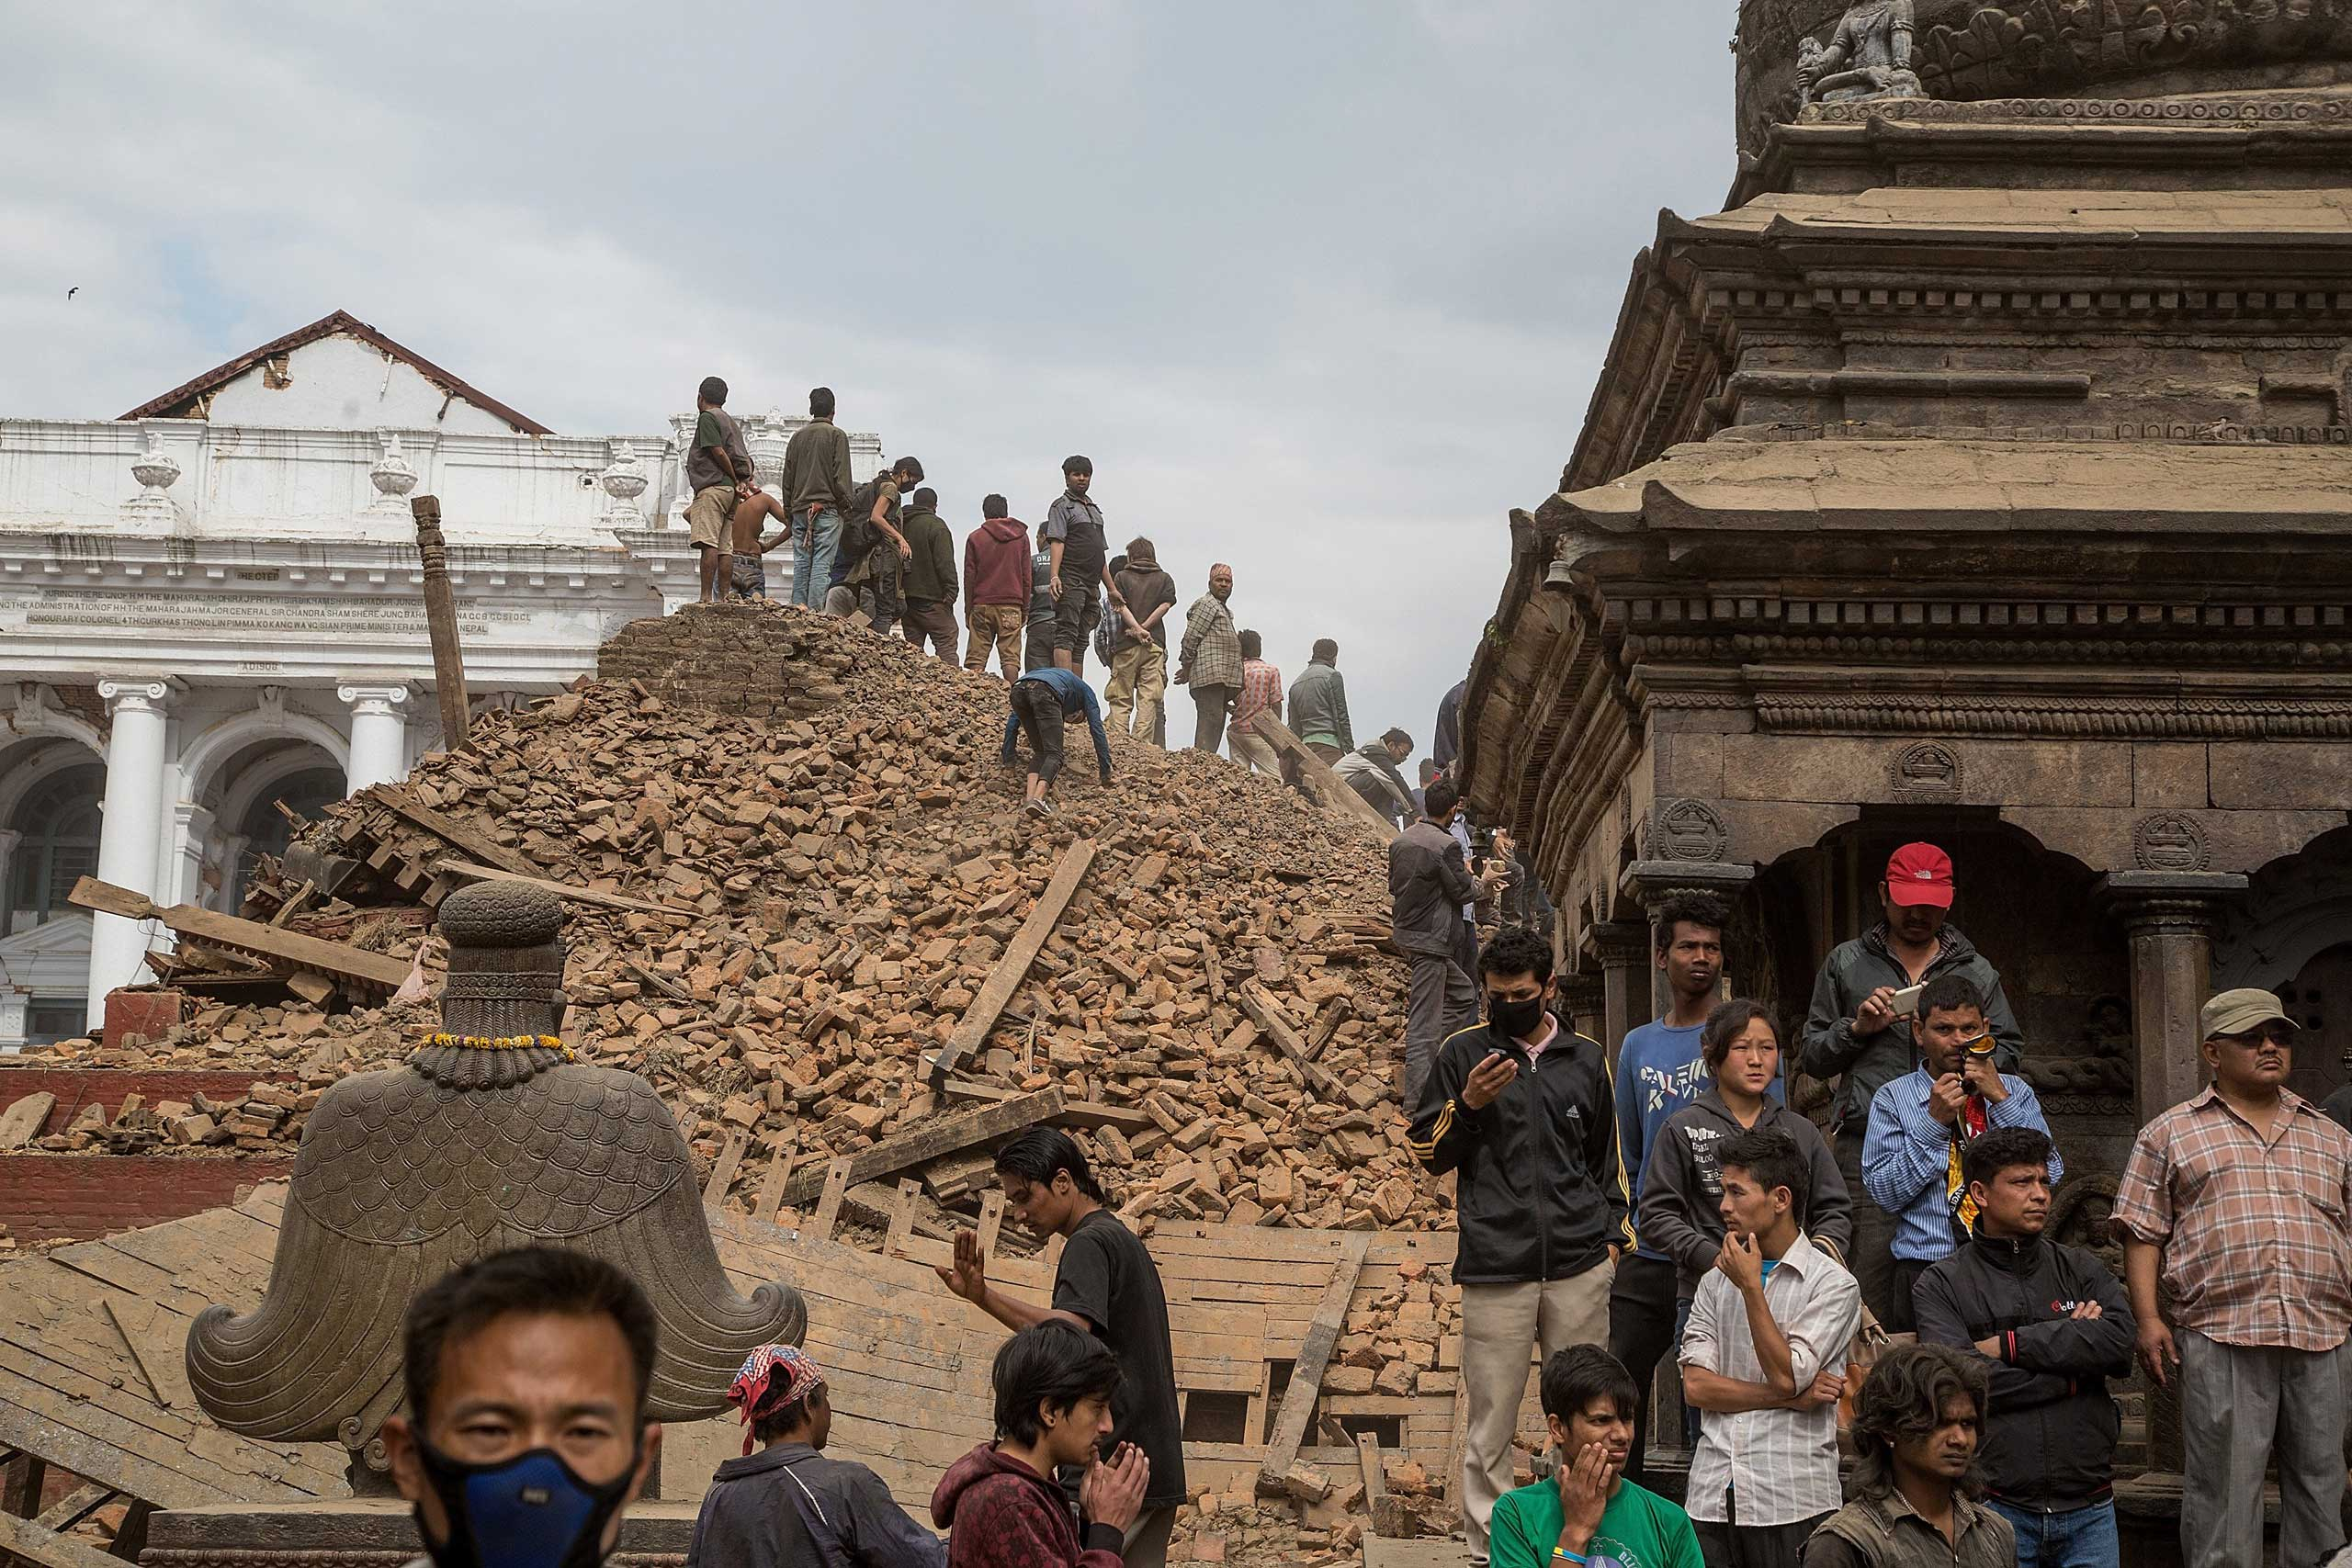 Emergency workers and bystanders clear debris while searching for survivors under a collapsed temple in Basantapur Durbar Square following an earthquake in Kathmandu on April 25, 2015.